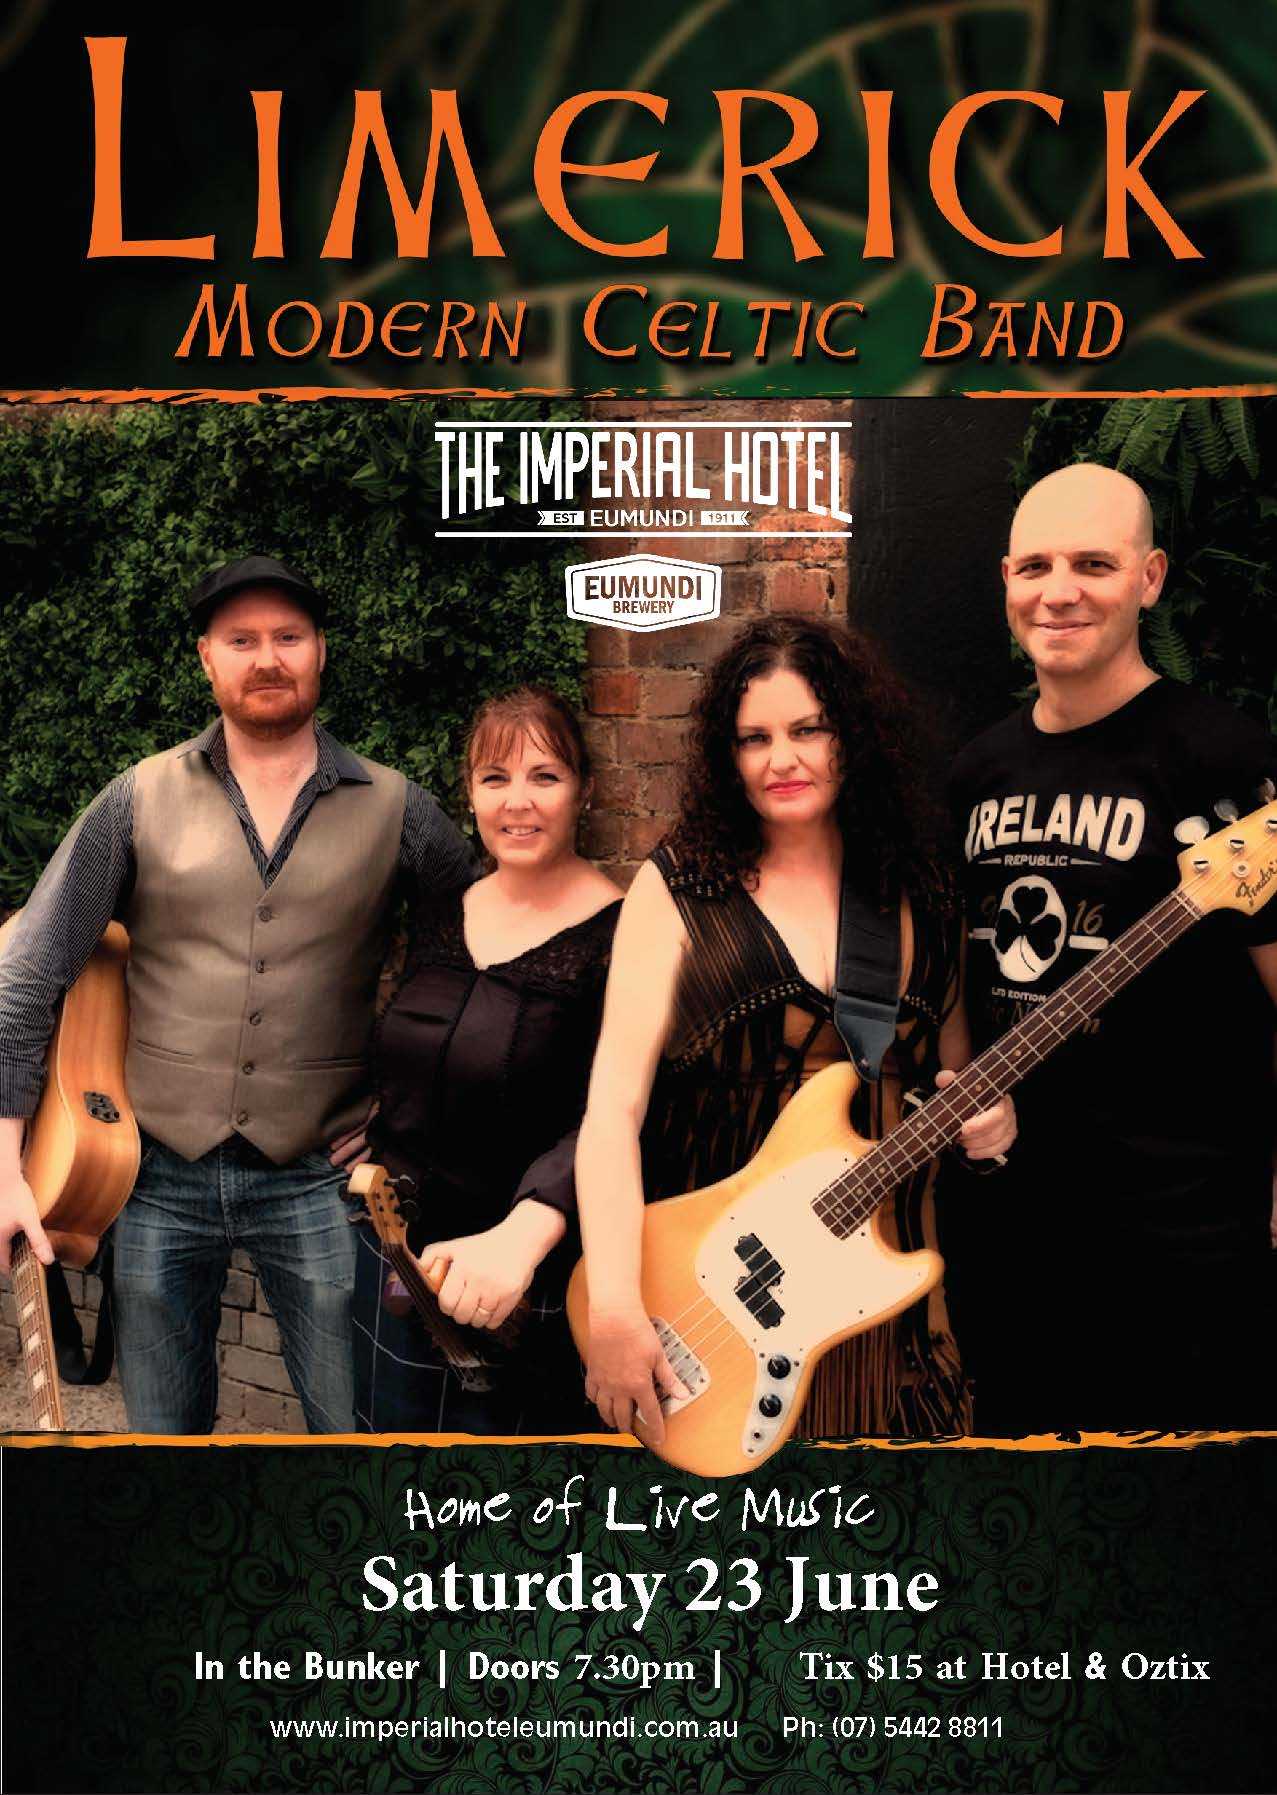 LIMERICK - MODERN CELTIC BAND, Saturday 24 February, doors 8pm